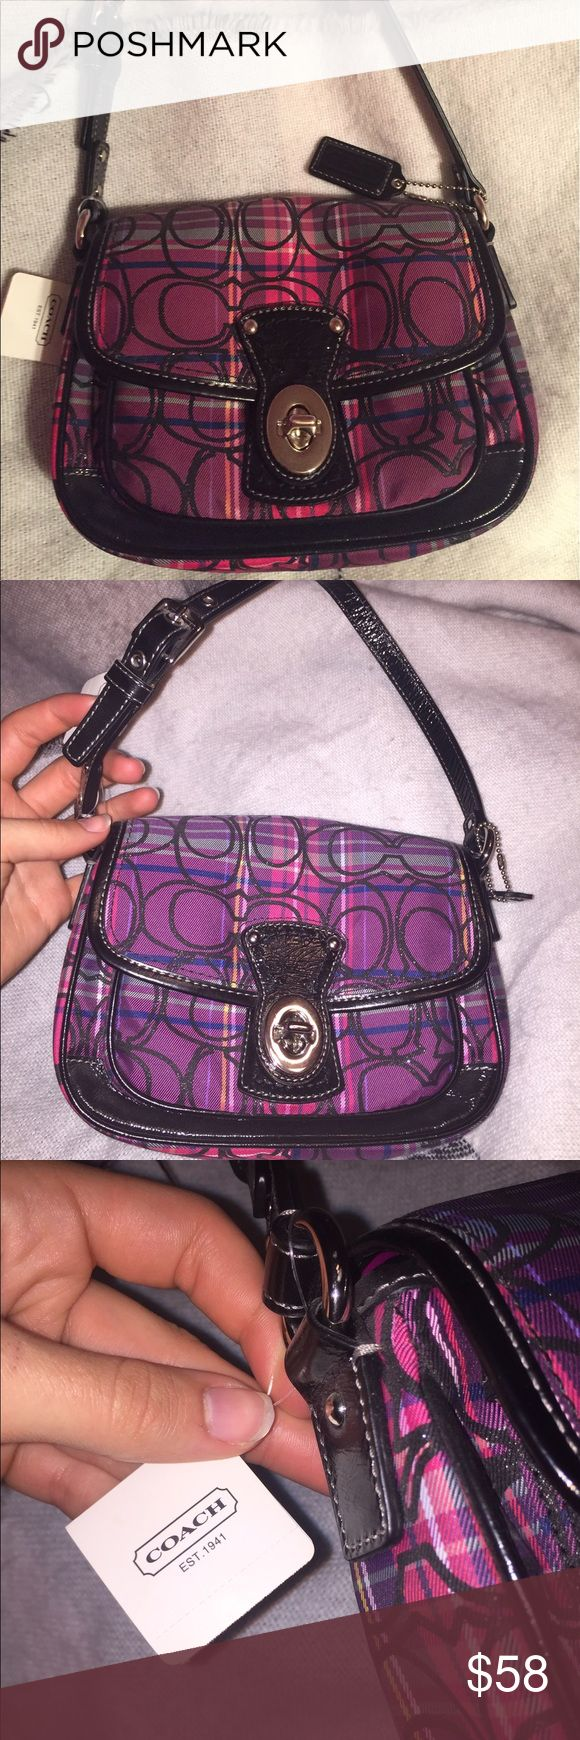 COACH Handbag A small but spacious little hand bag from coach. Never used and still has tags, pink plaid with black sparkly coach logos, black leather adjustable strap, metal turn lock on front, one large interior pocket and small outer pocket. Coach Bags Mini Bags